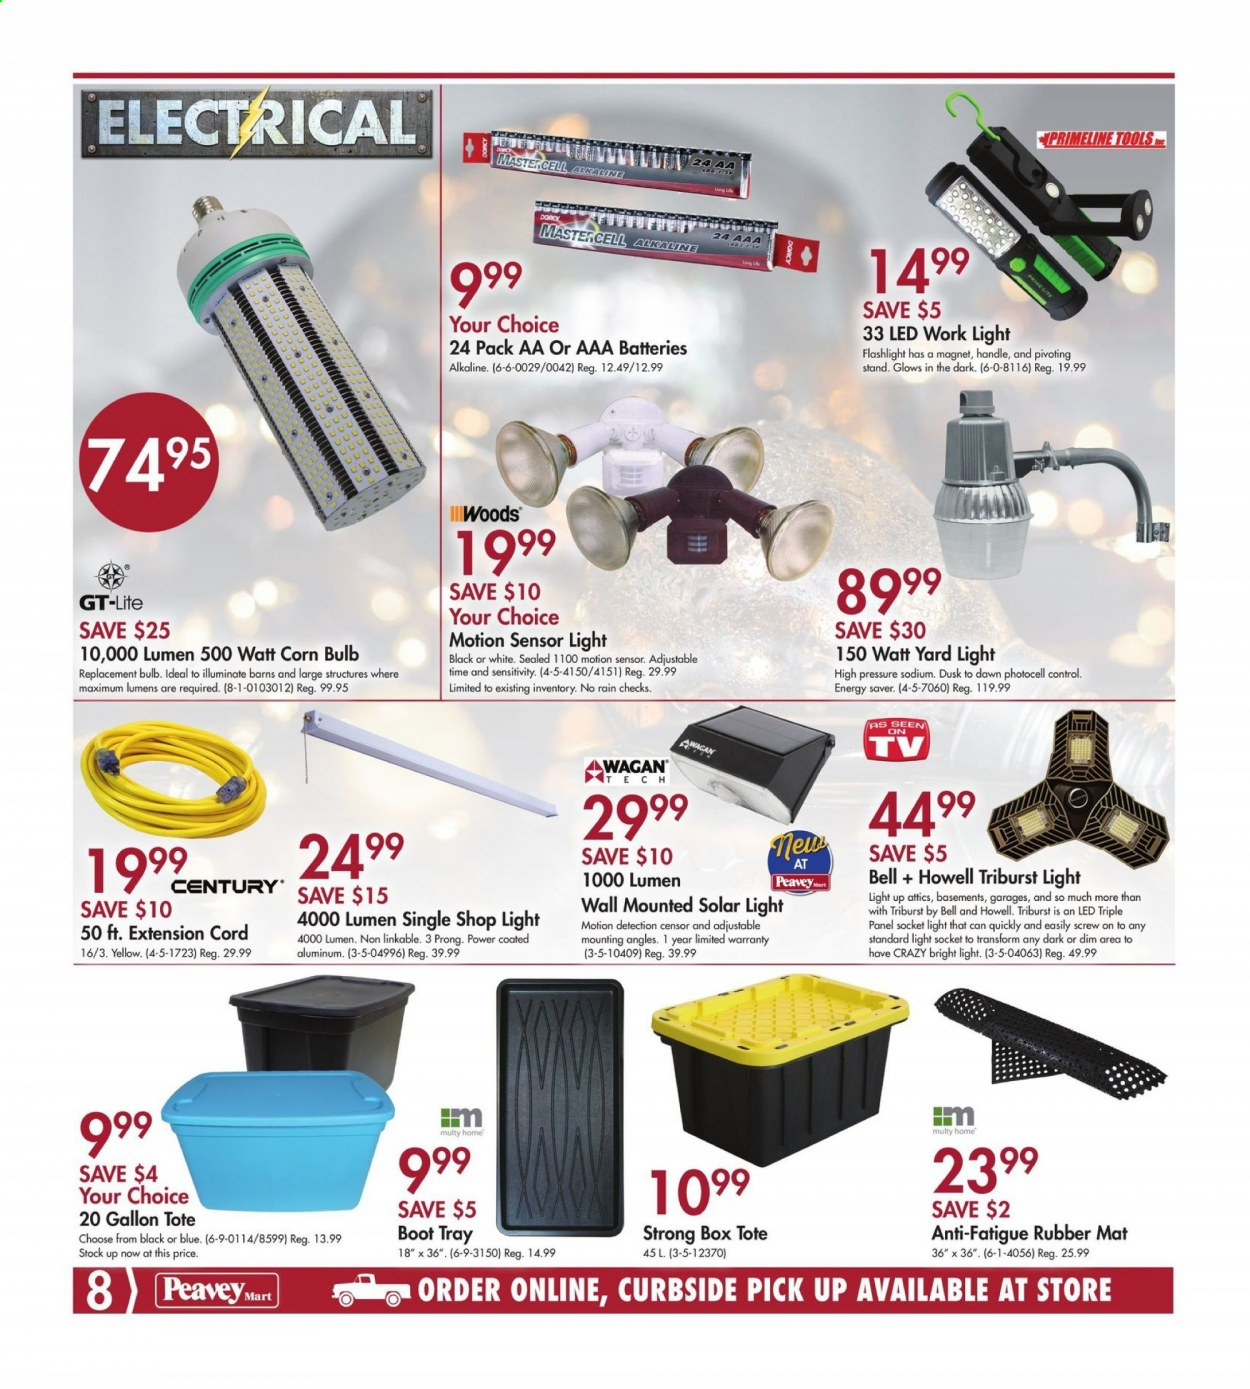 Peavey Mart Flyer October 15 2020 October 25 2020 Page 8 Canadian Flyers